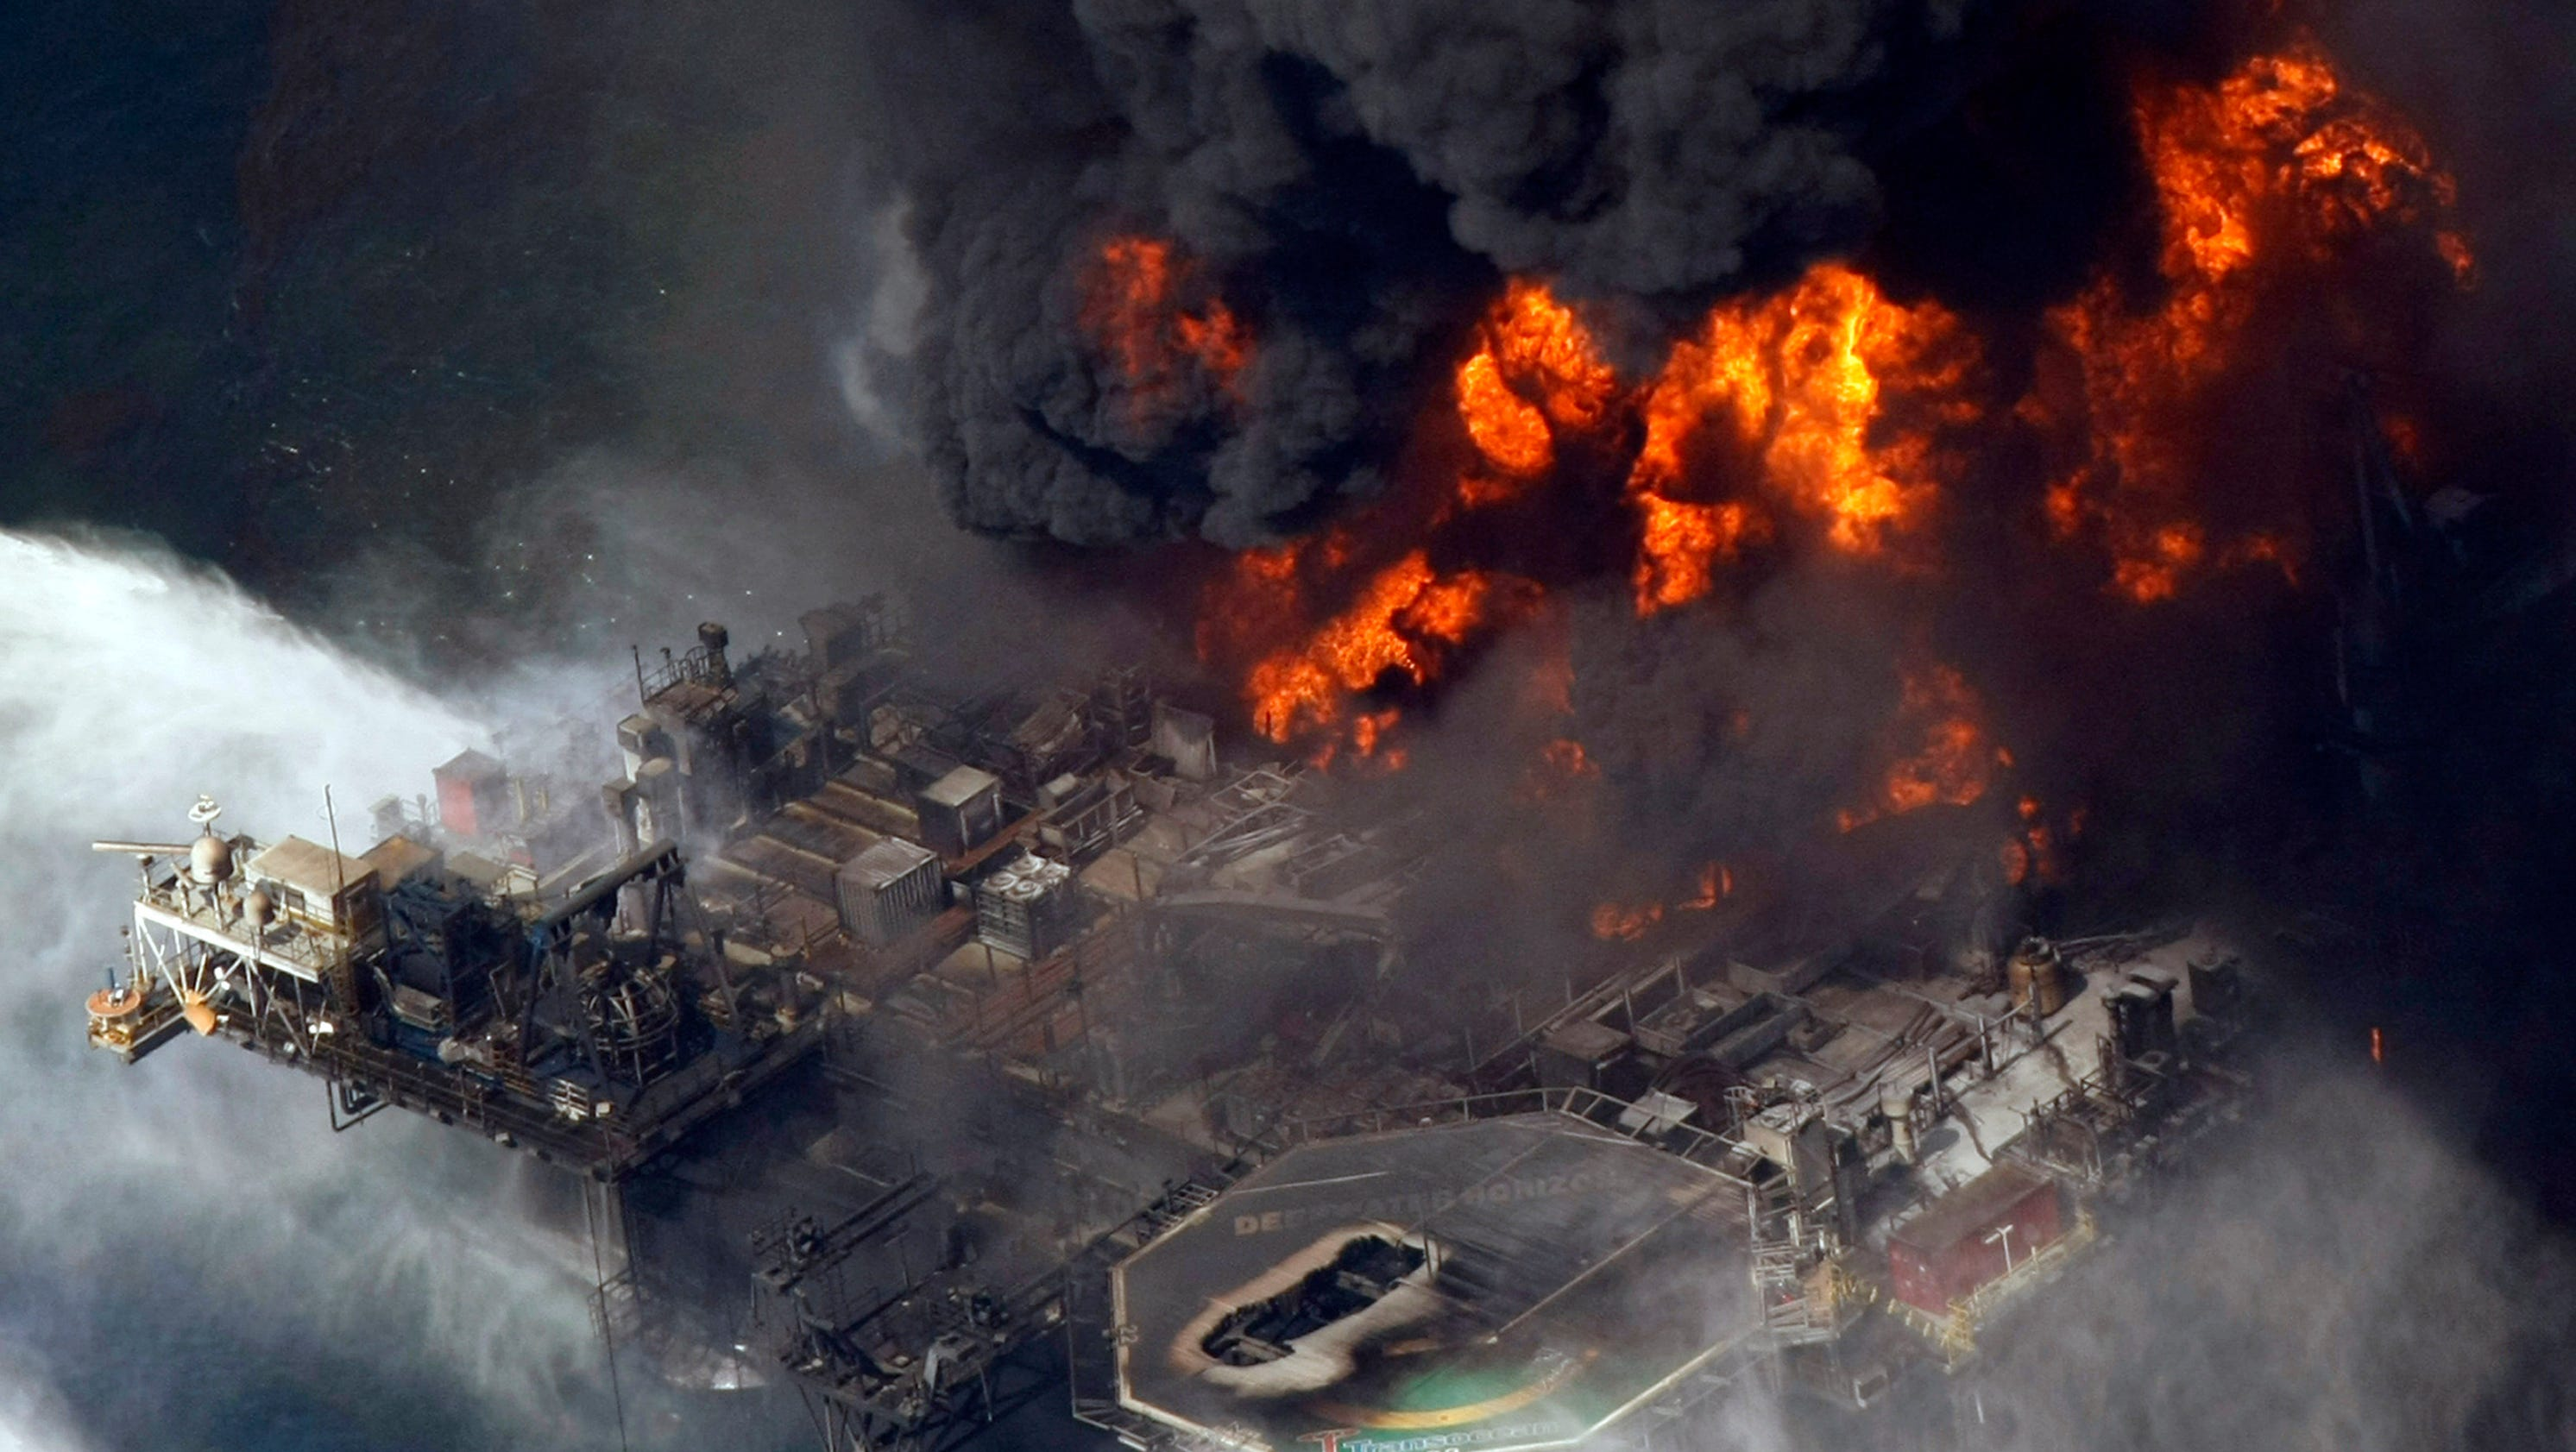 Judge: BP's reckless conduct caused Gulf oil spill